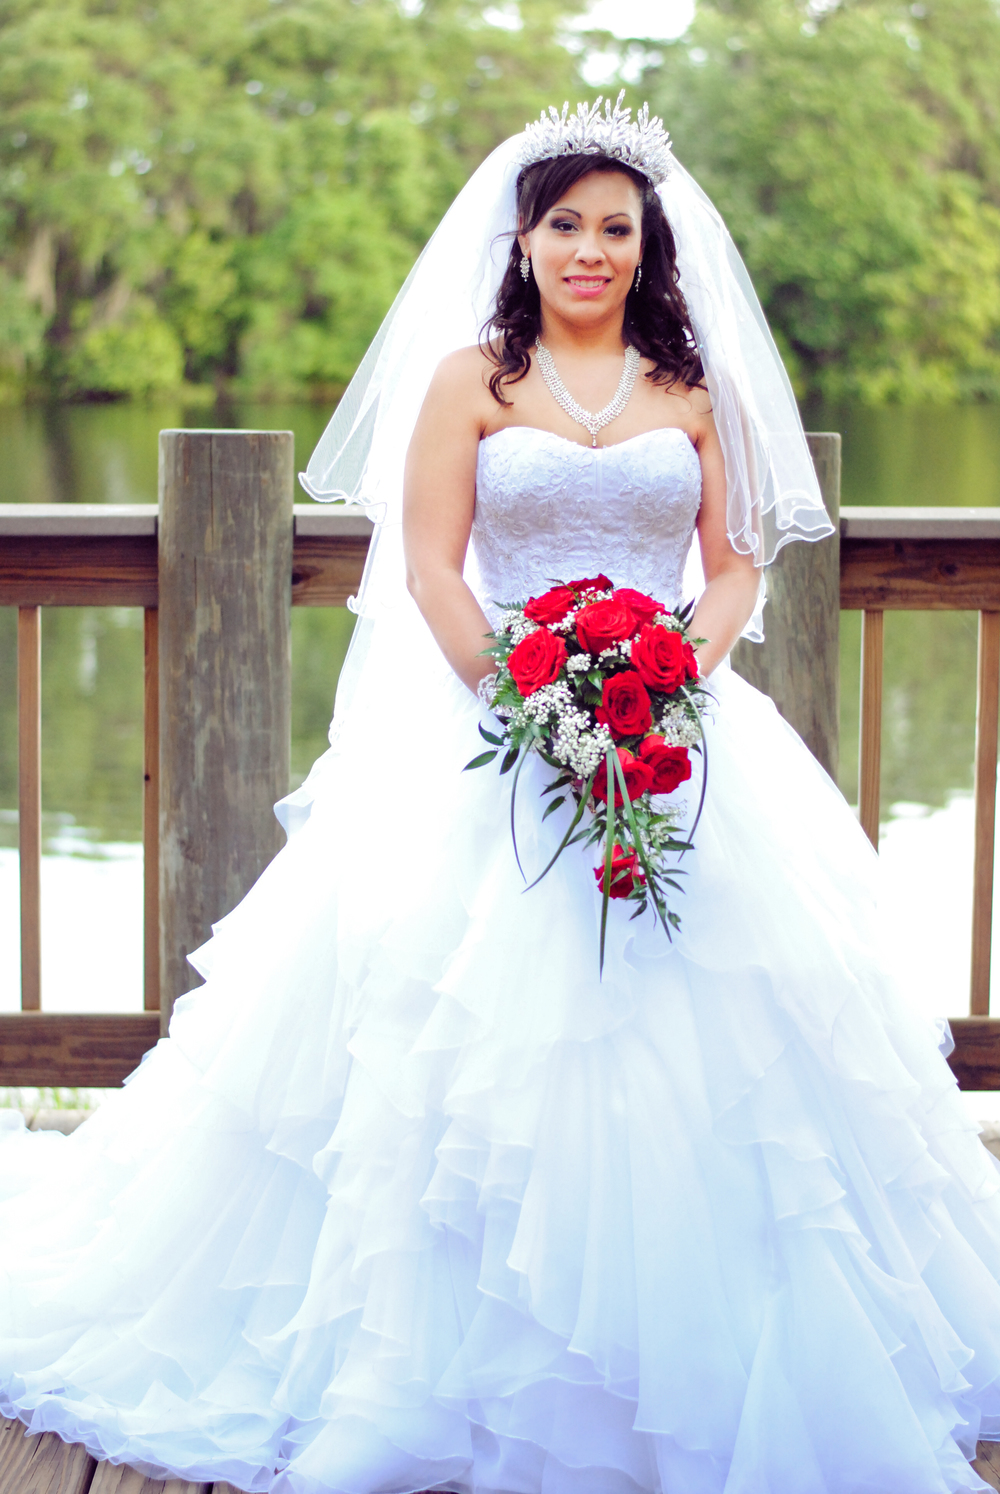 The Bride in her Gown